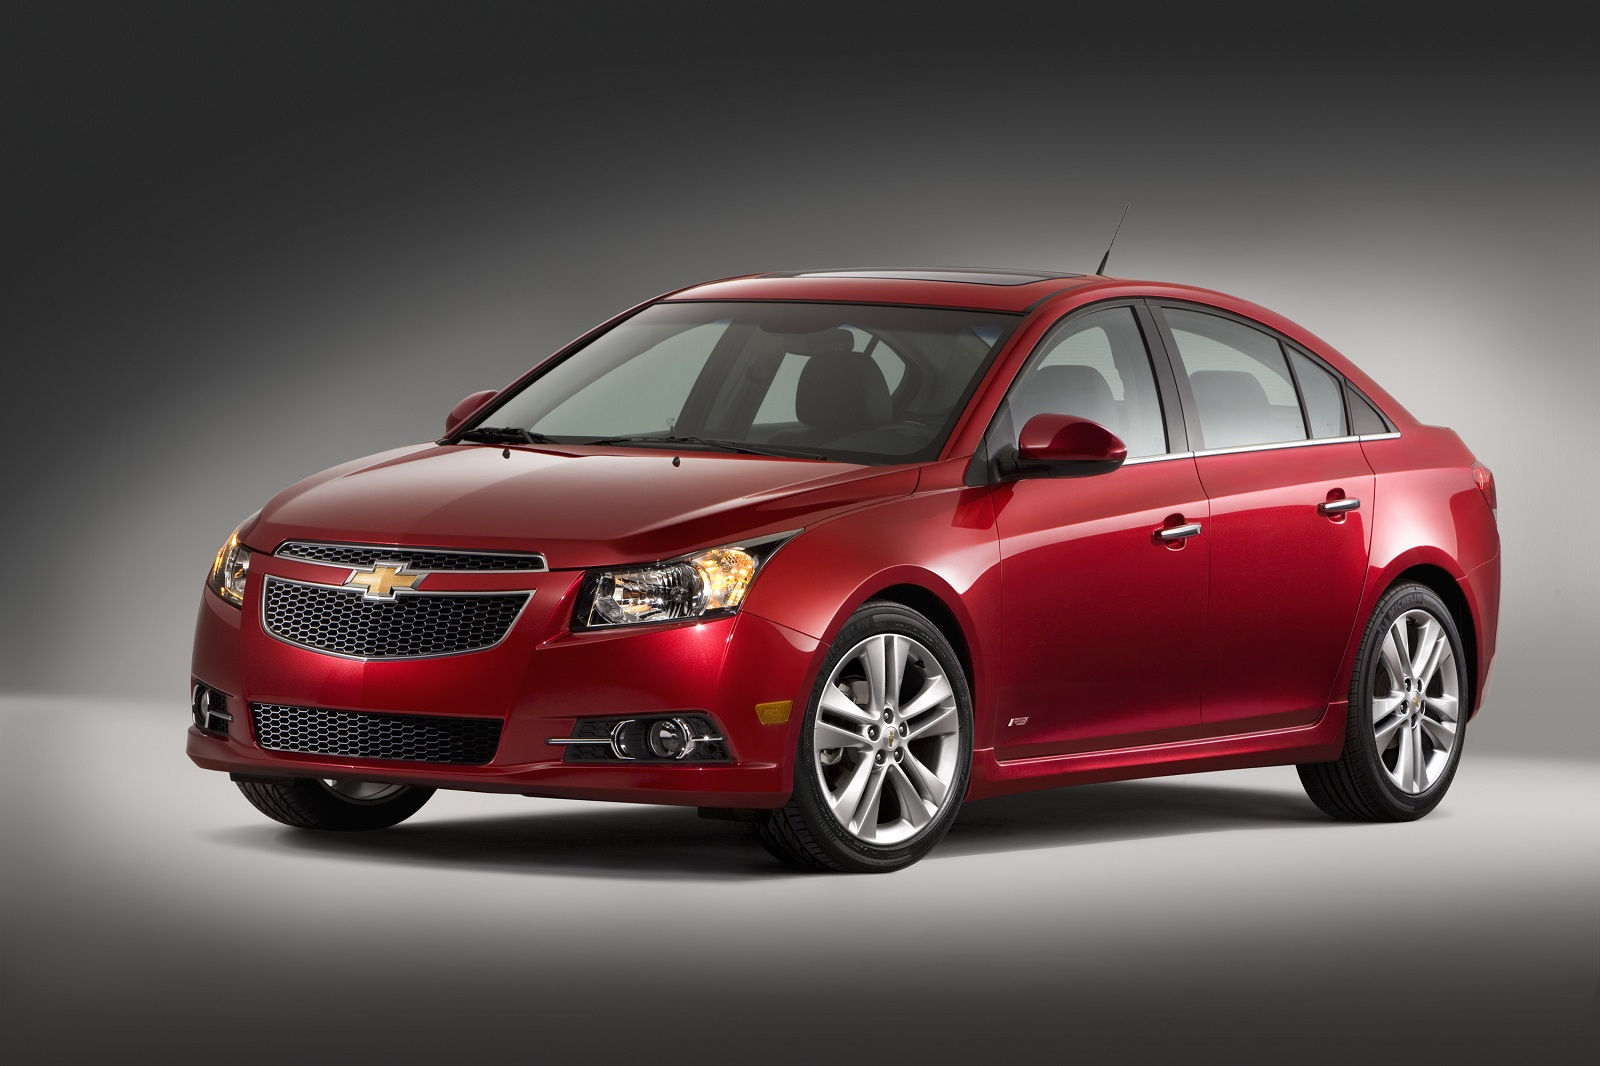 2014 chevrolet cruze_100438895_h 2011 2012 chevrolet cruze recalled for brake issue 2014 chevy cruze fog light wiring diagram at crackthecode.co